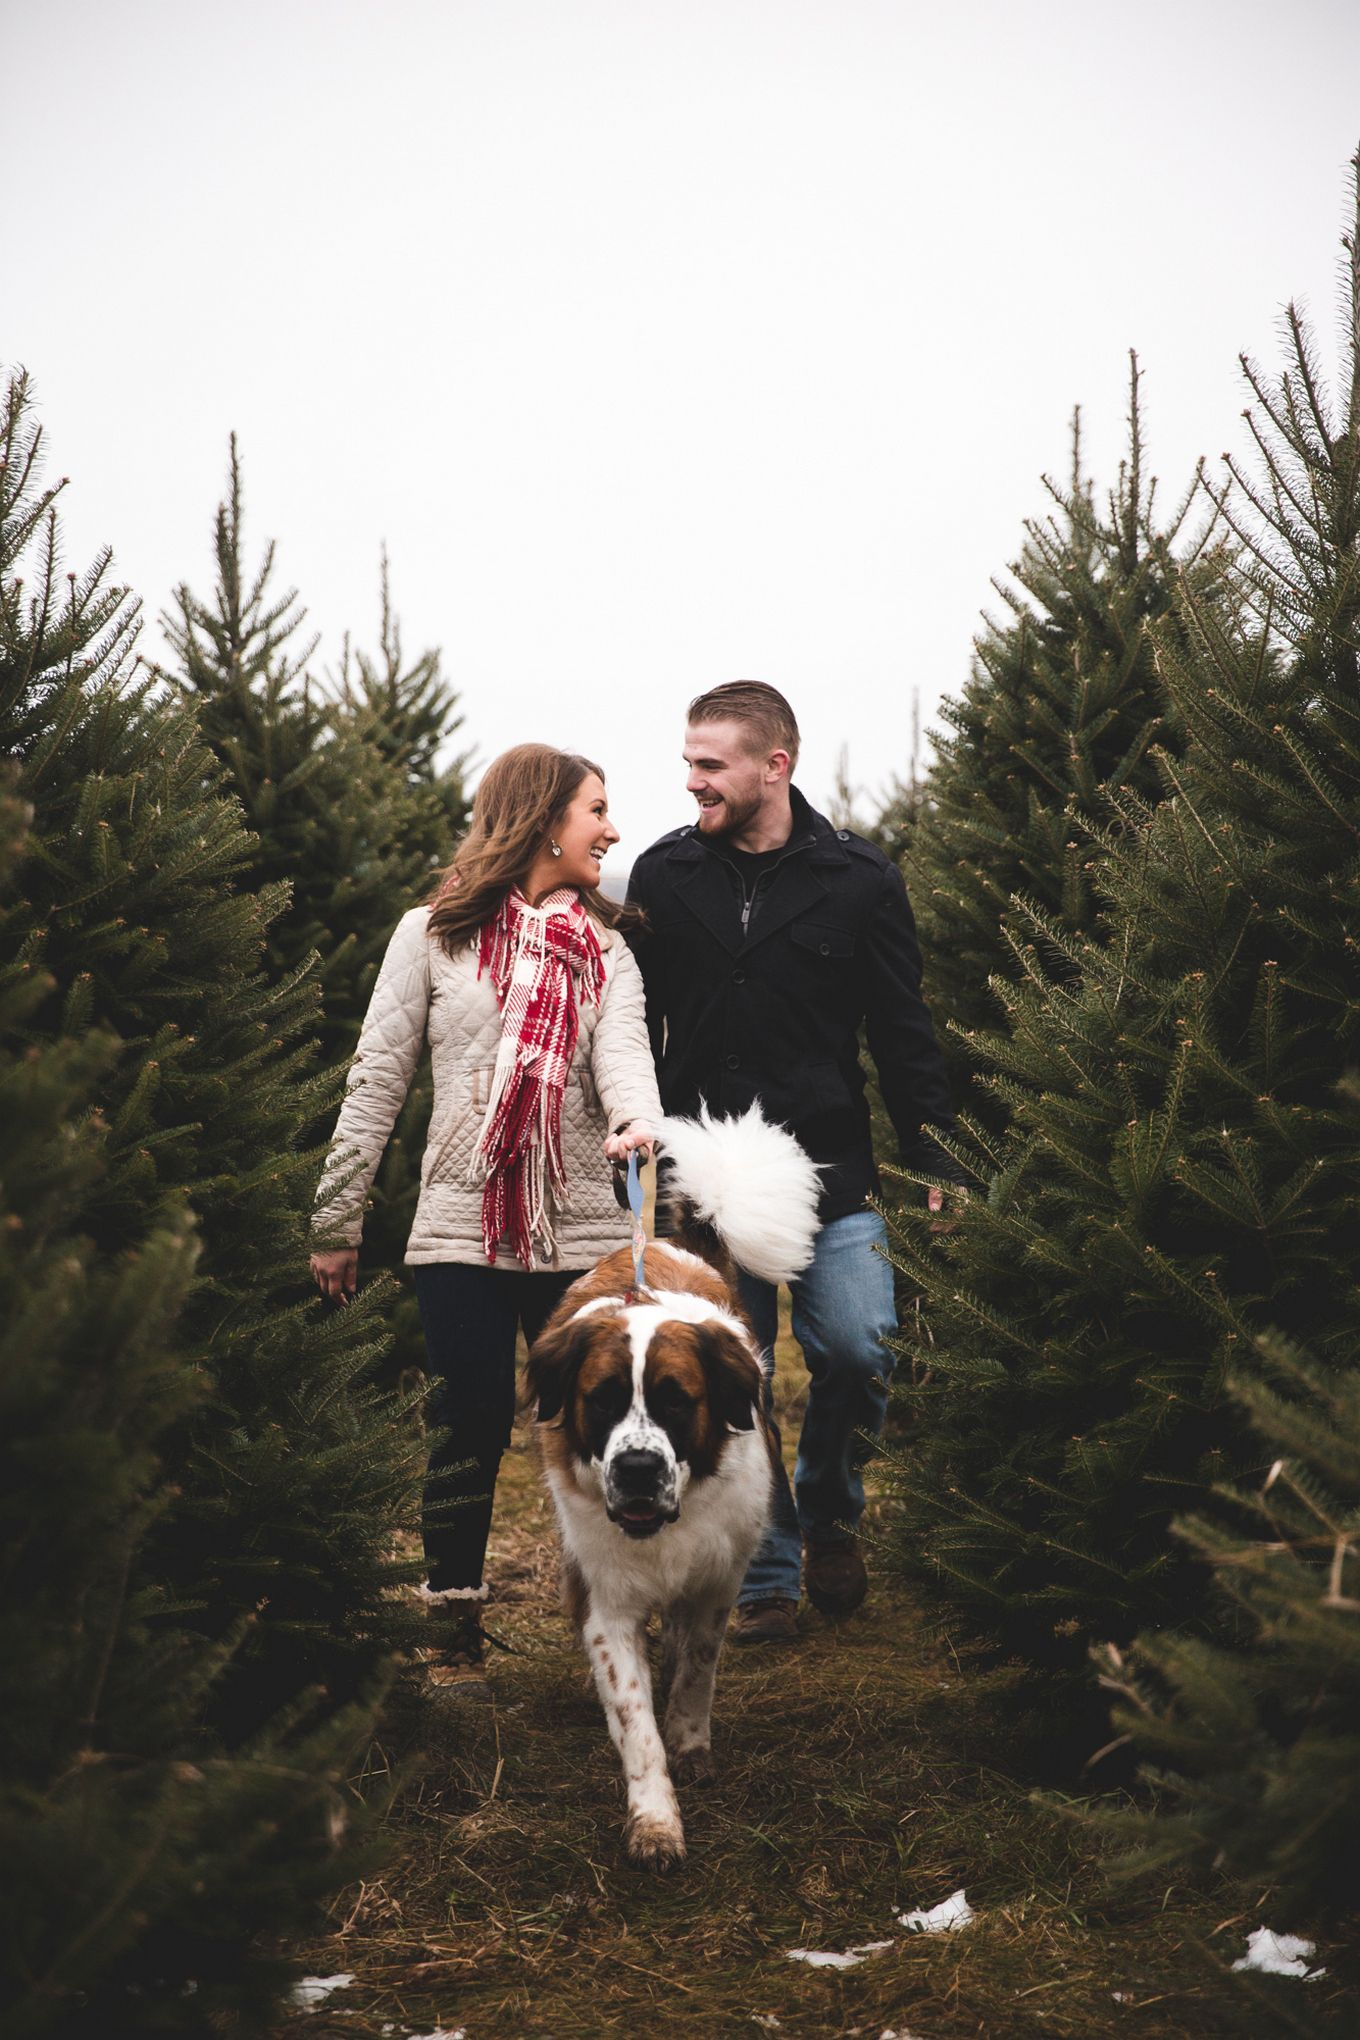 The Tree Has Excellent Needle Retention Together With A Great Smell You Ar Dog Christmas Pictures Christmas Tree Farm Pictures Christmas Tree Farm Photo Shoot